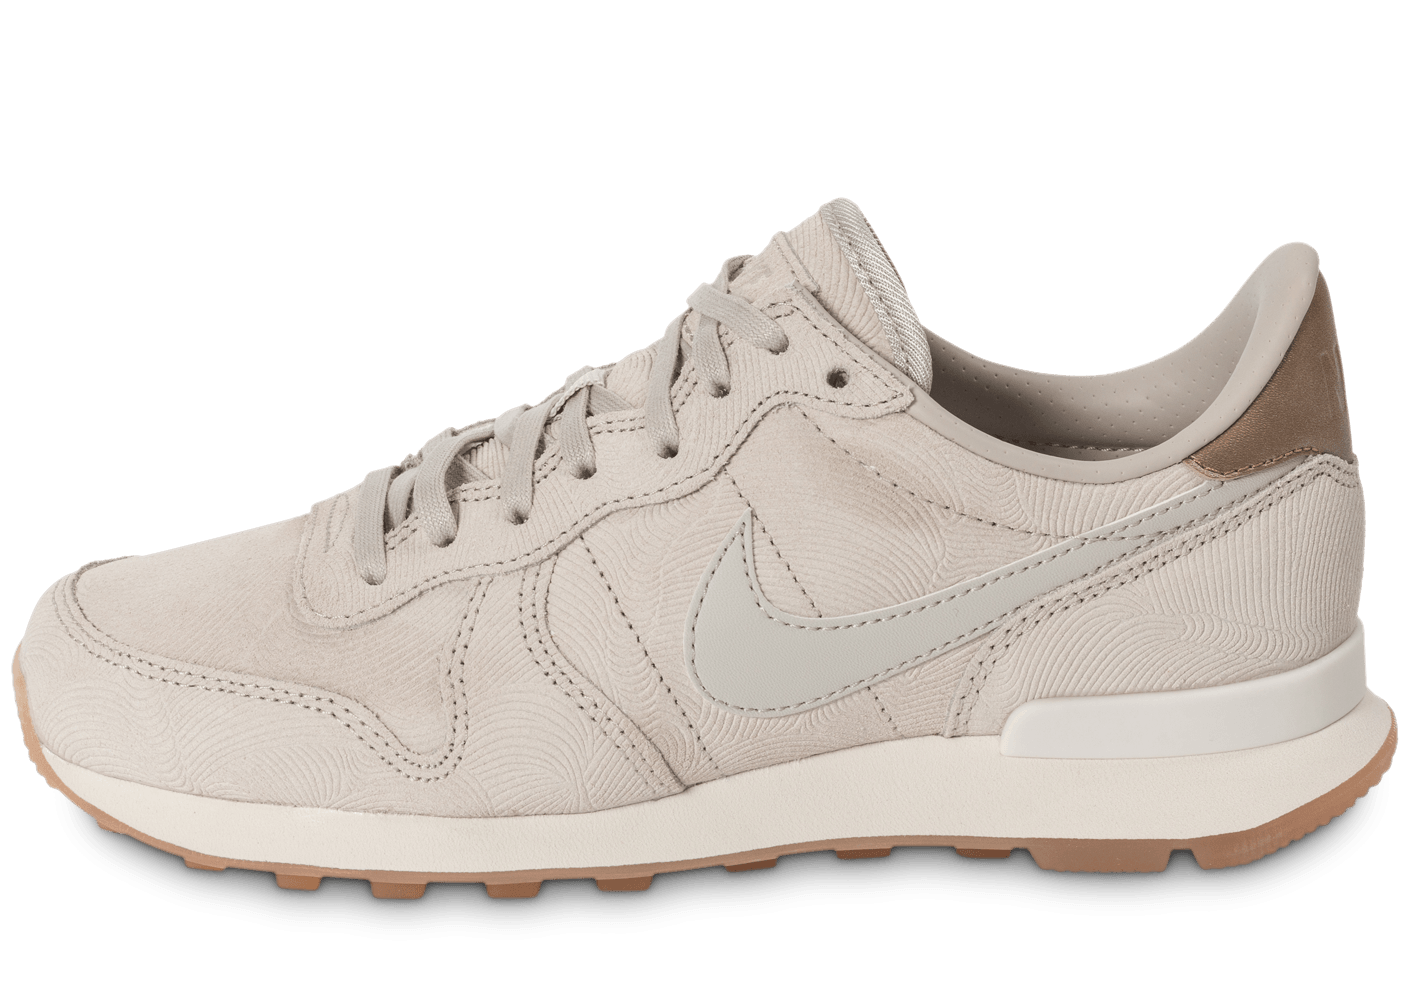 brand new d5e14 6151d ... shopping nike internationalist prm gamma grey chaussures chaussures  chausport 92550 5e4b2